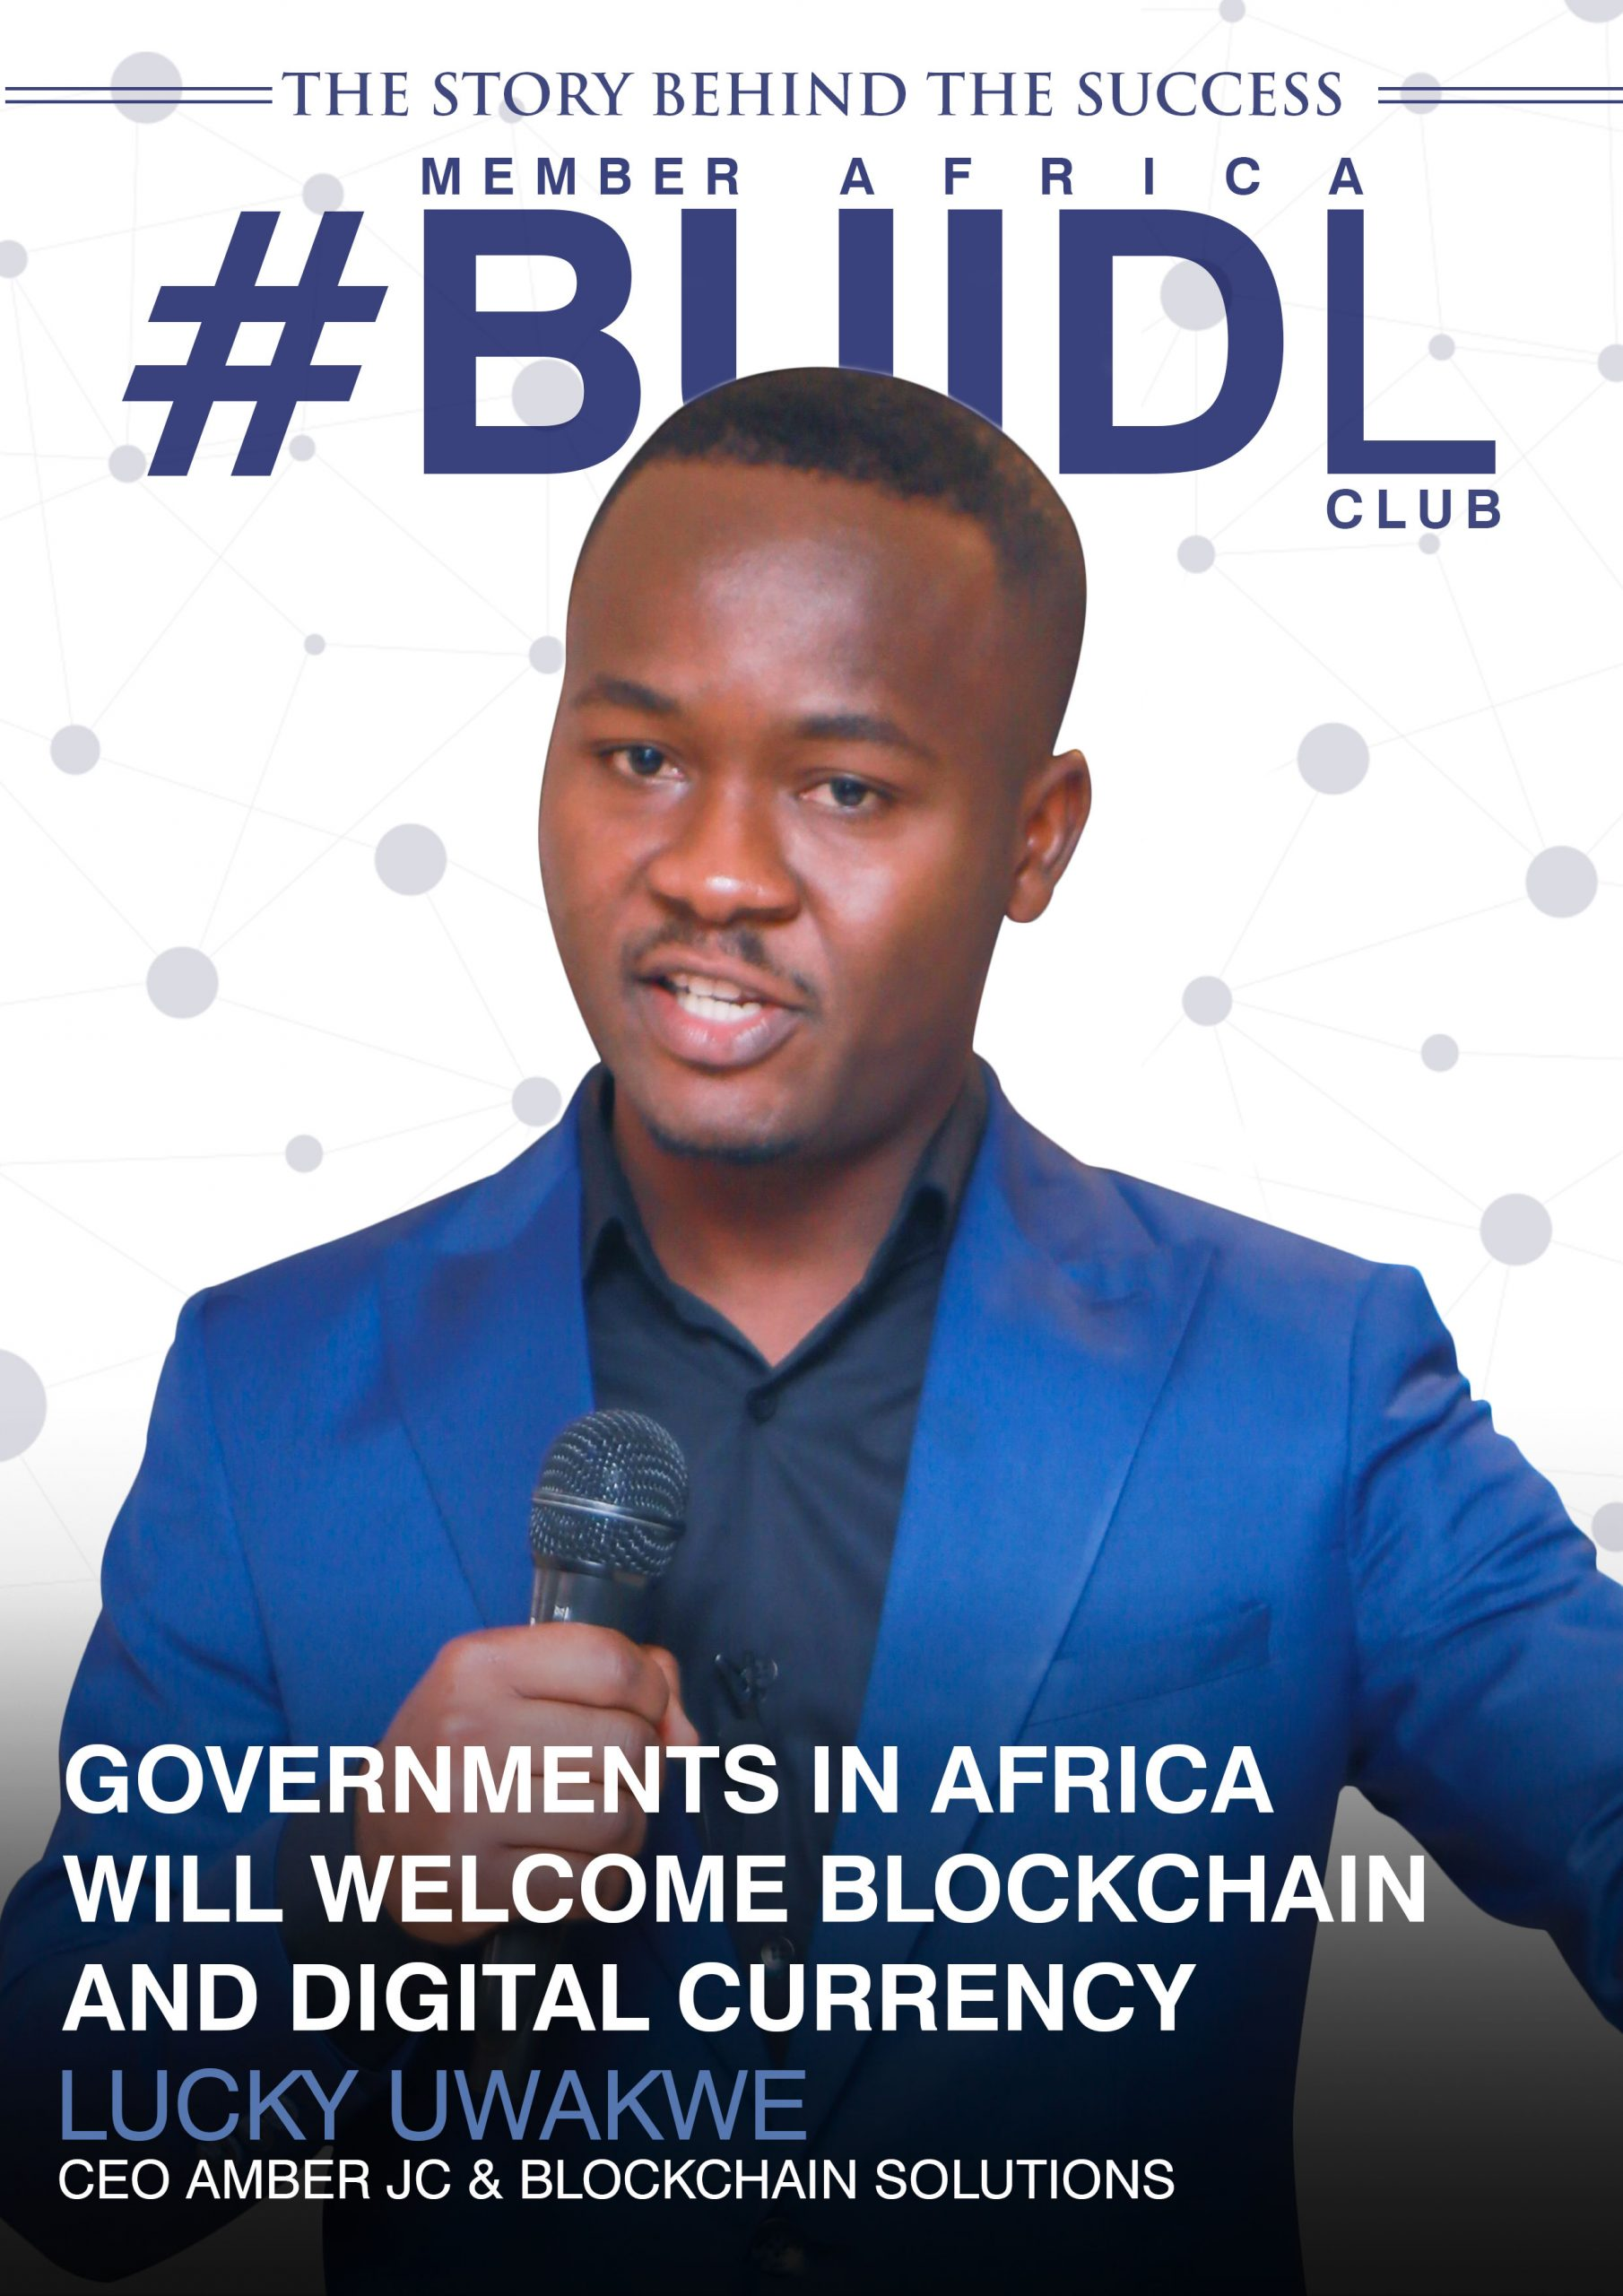 Lucky Uwakwe - African Government will welcome blockchain technology